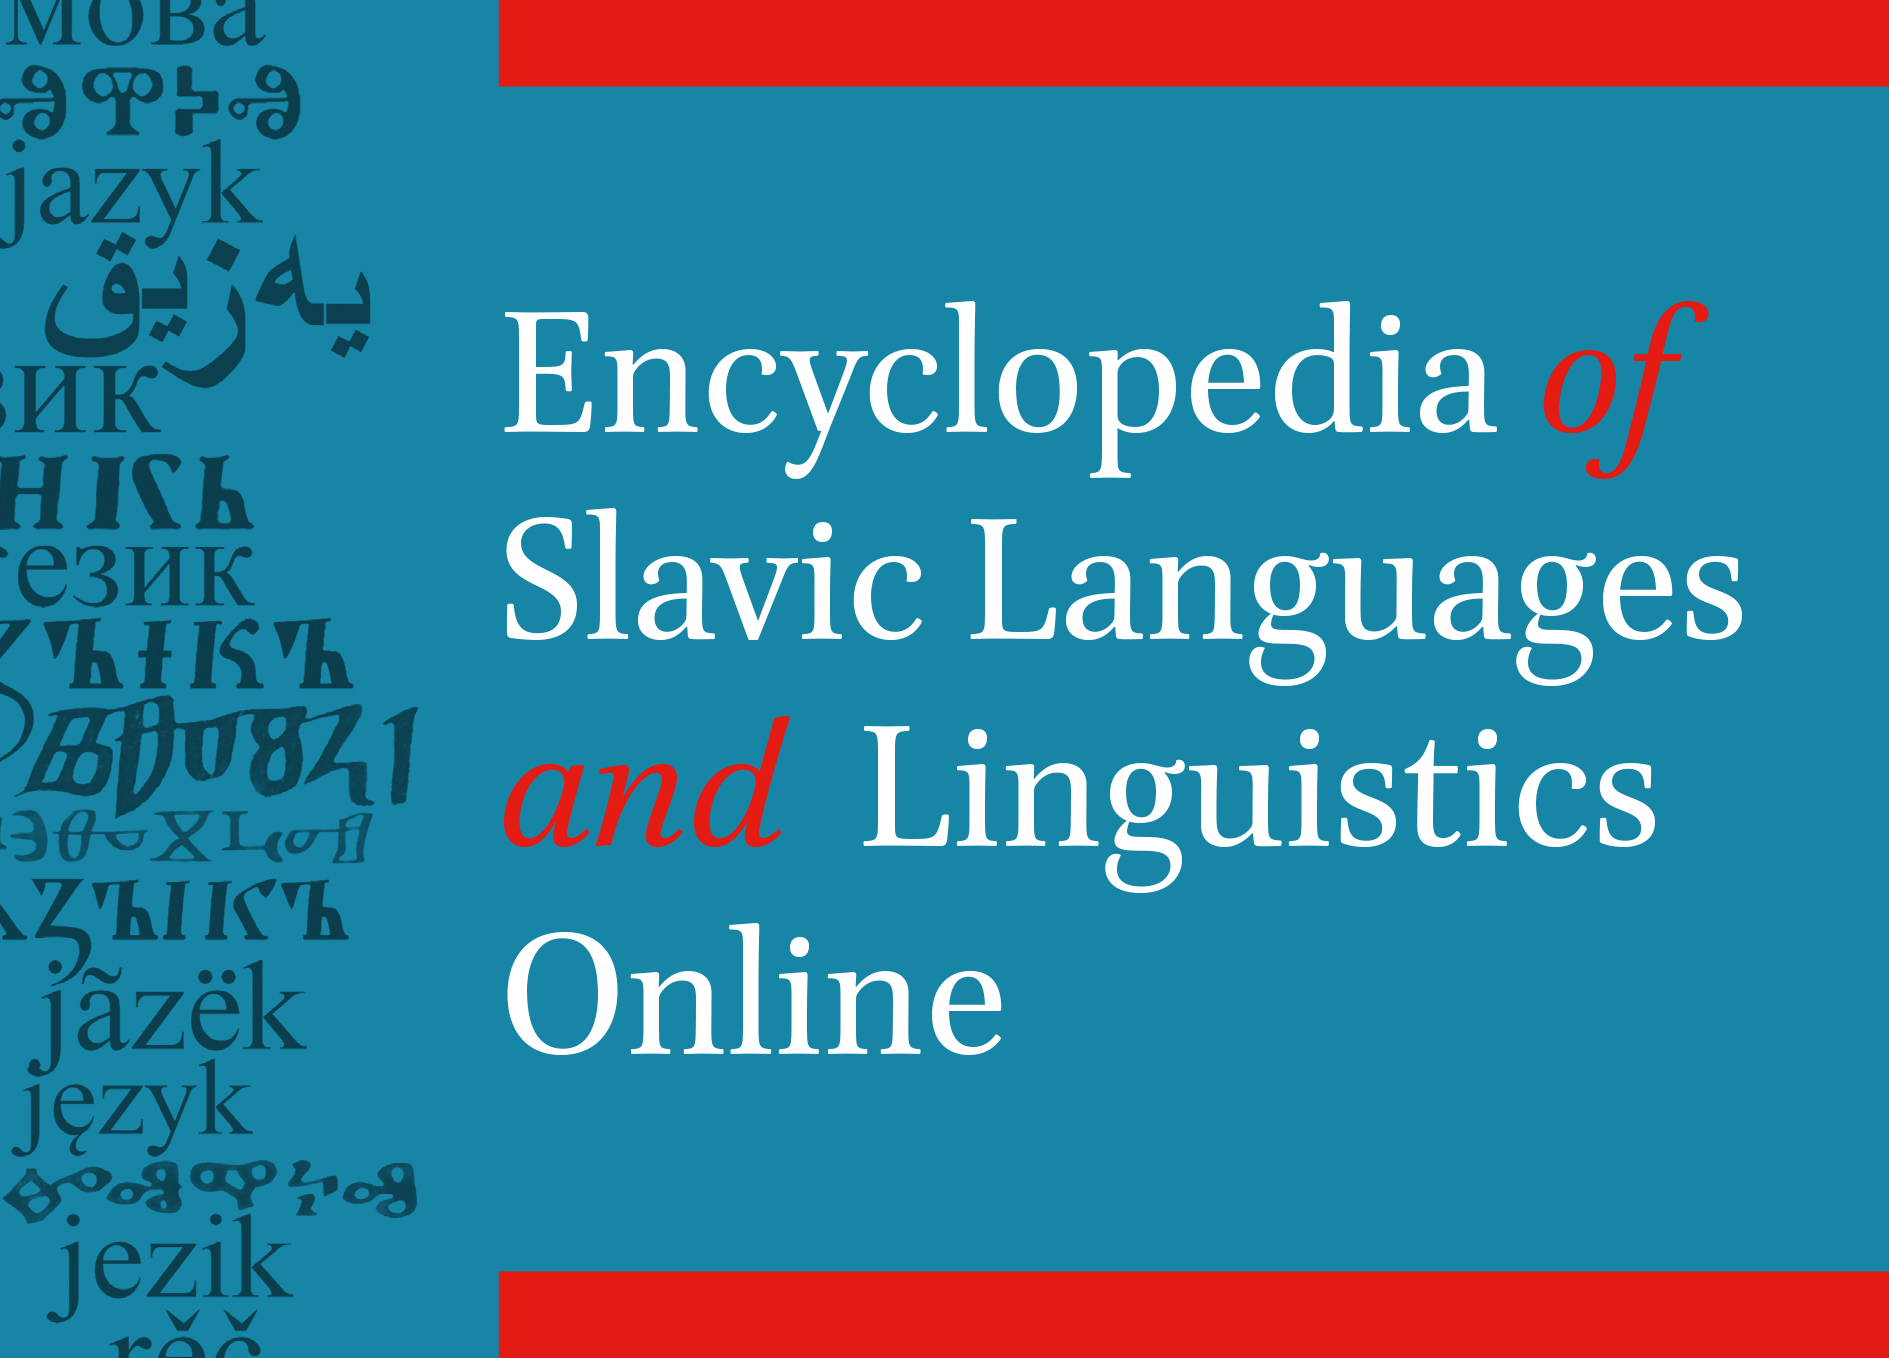 Encyclopedia of Slavic Languages and Linguistics